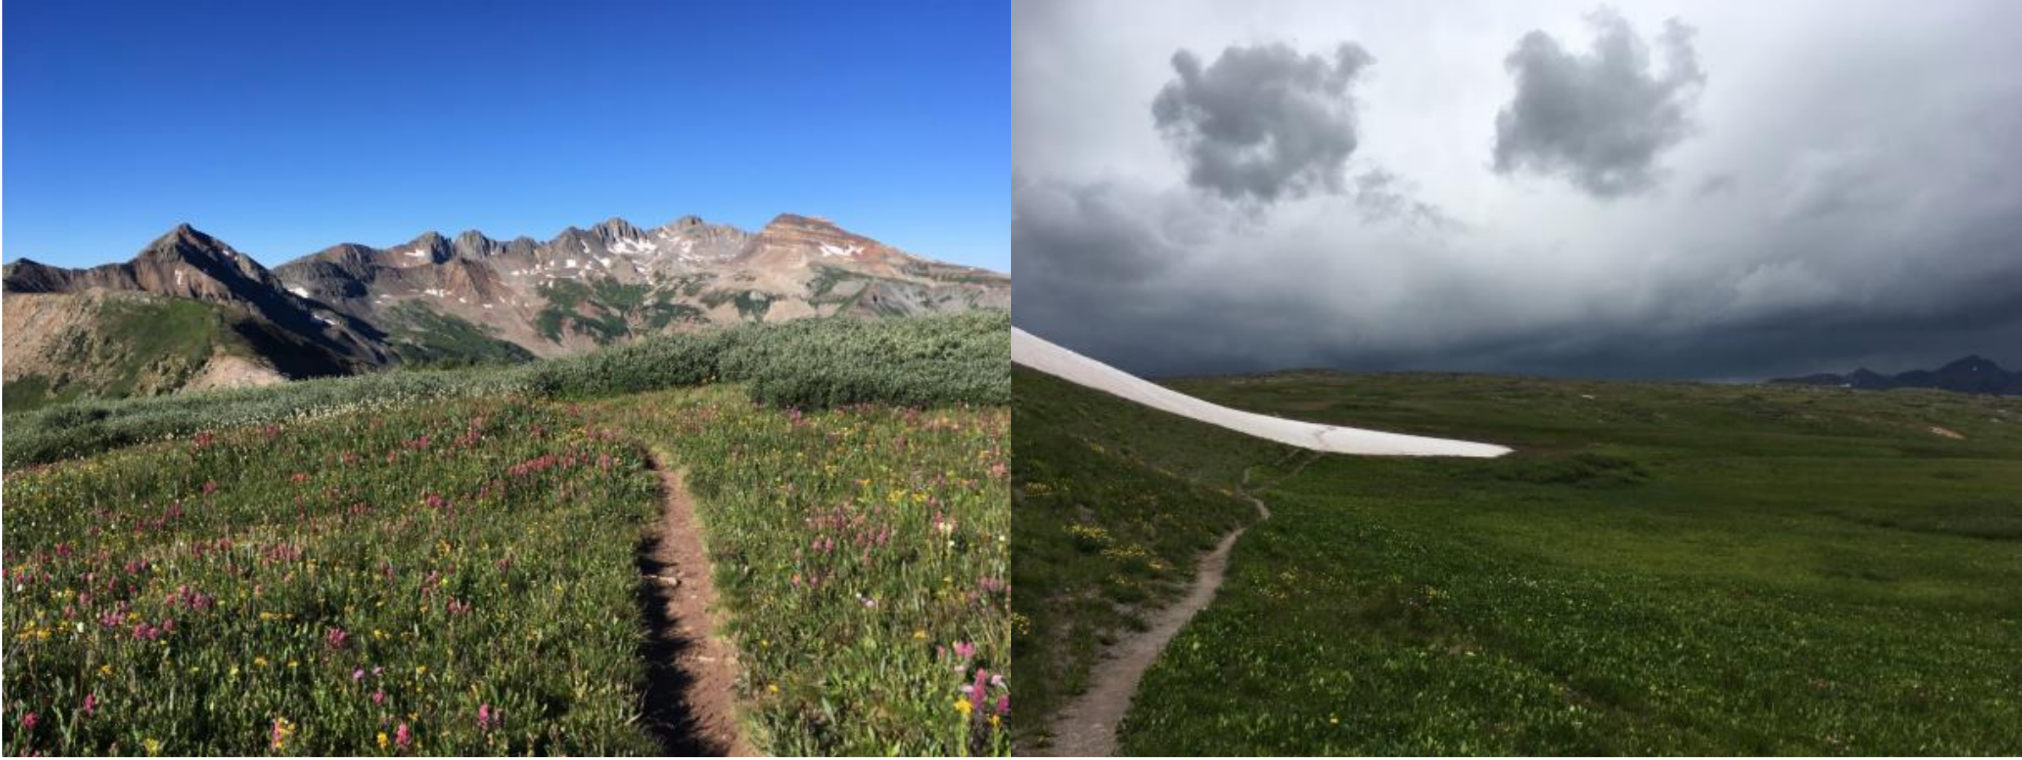 The beauty and danger of the Colorado Trail. L: wildflowers in the San Juans. R: angry afternoon weather, with no shelter in sight.